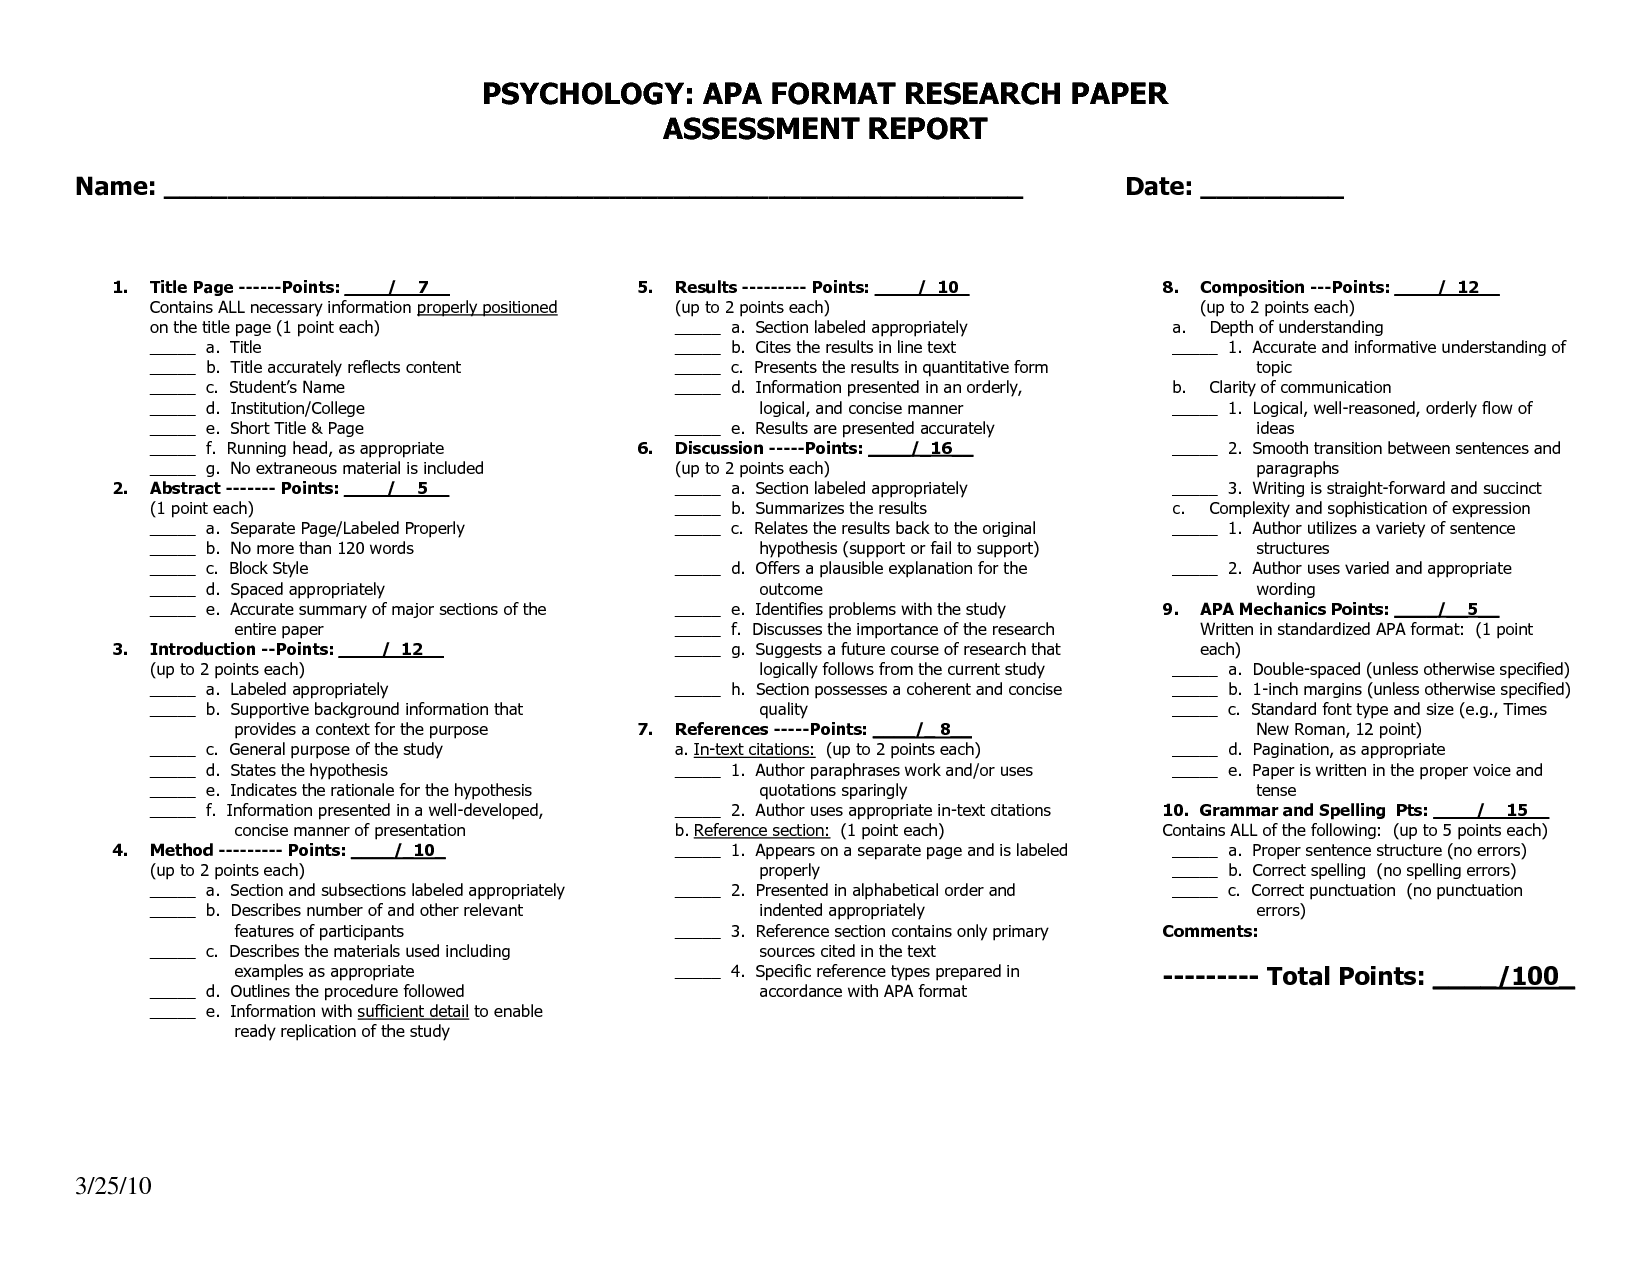 021 Research Paper Apa Format For Psychology Striking Topics High School Students Reddit Full